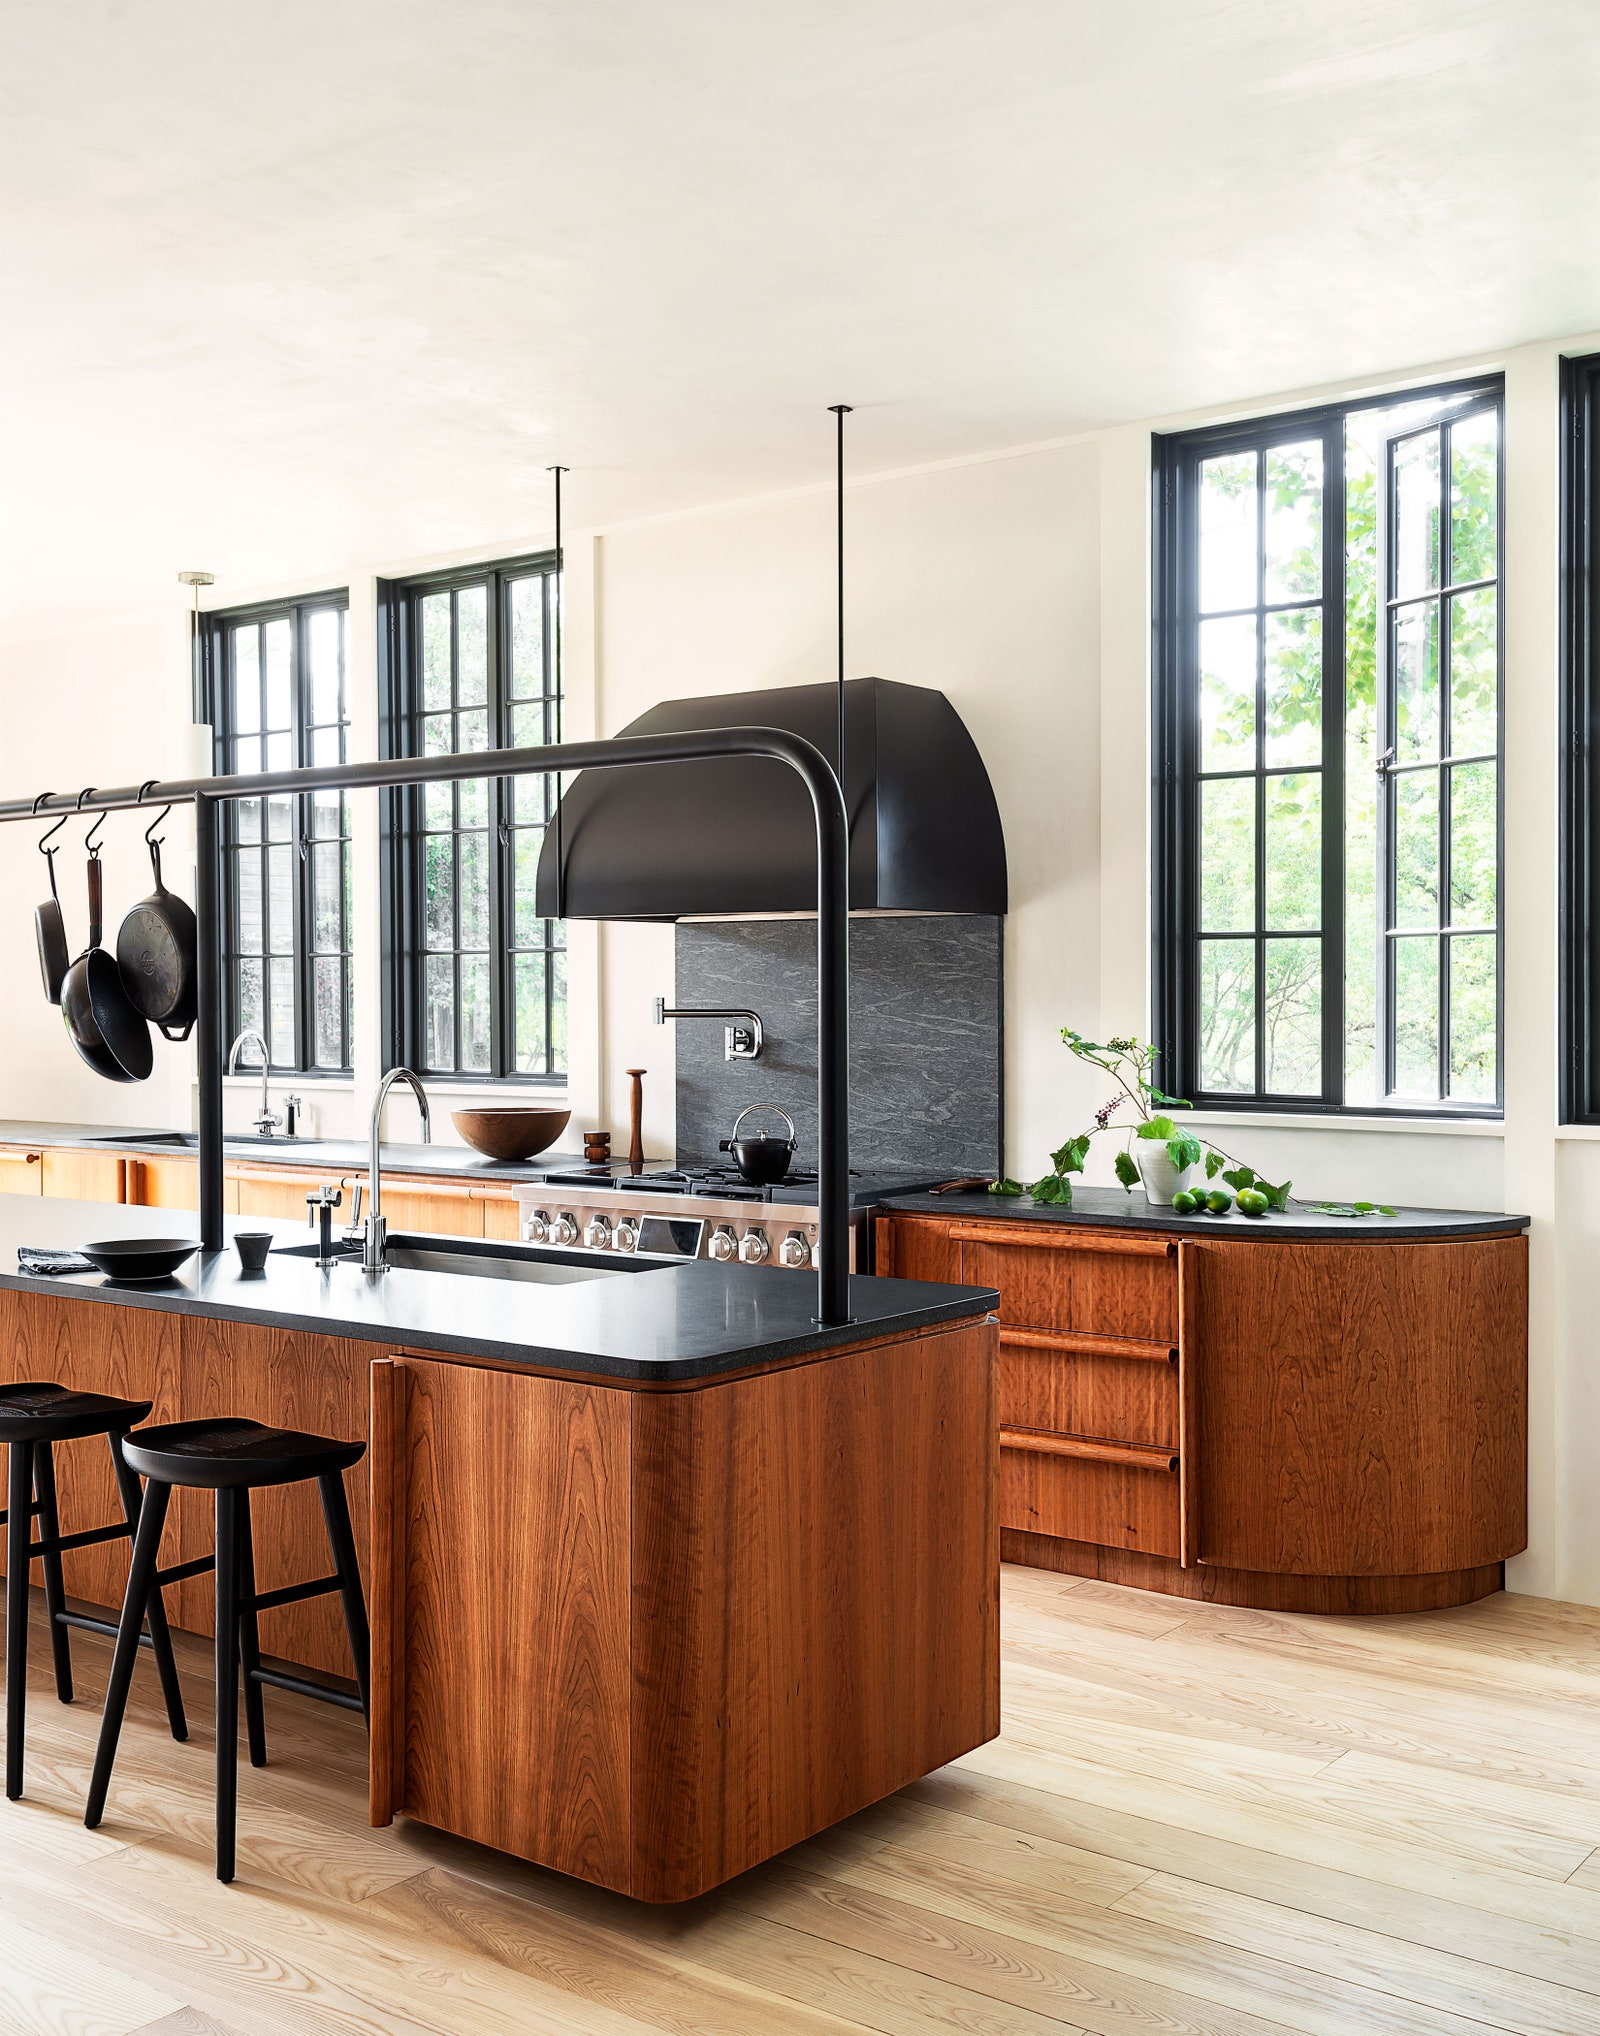 Rejuvenation counter stools tuck into the custom cherryandgranite island which also features a custom pot rack...